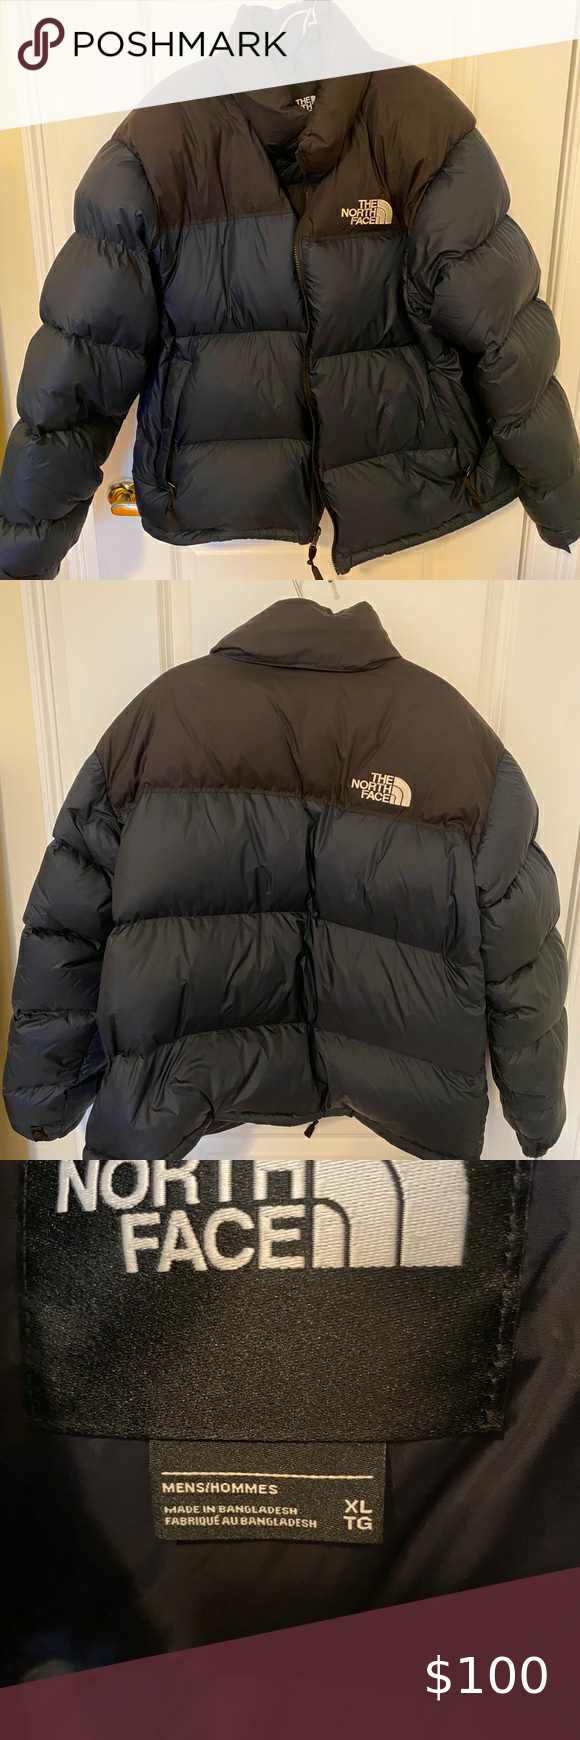 North Face Bubble Jacket In 2020 North Face Bubble Jacket Black North Face The North Face [ 1740 x 580 Pixel ]